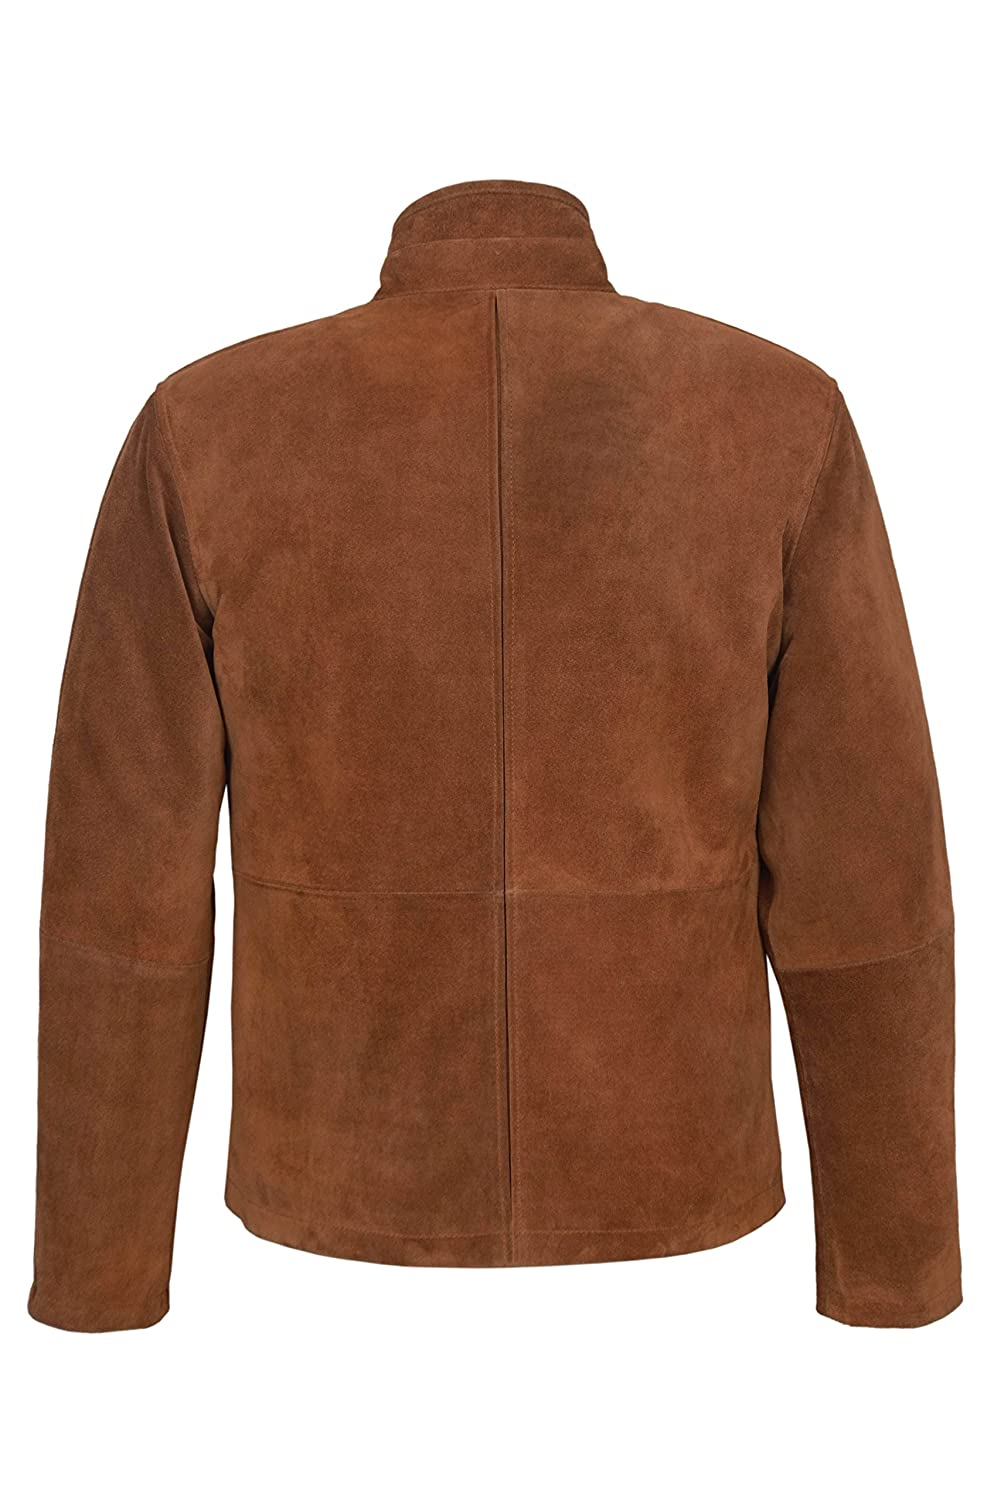 c31067410 New Men's Tom Cruise Mission Impossible Tan Classic Biker Style Real ...